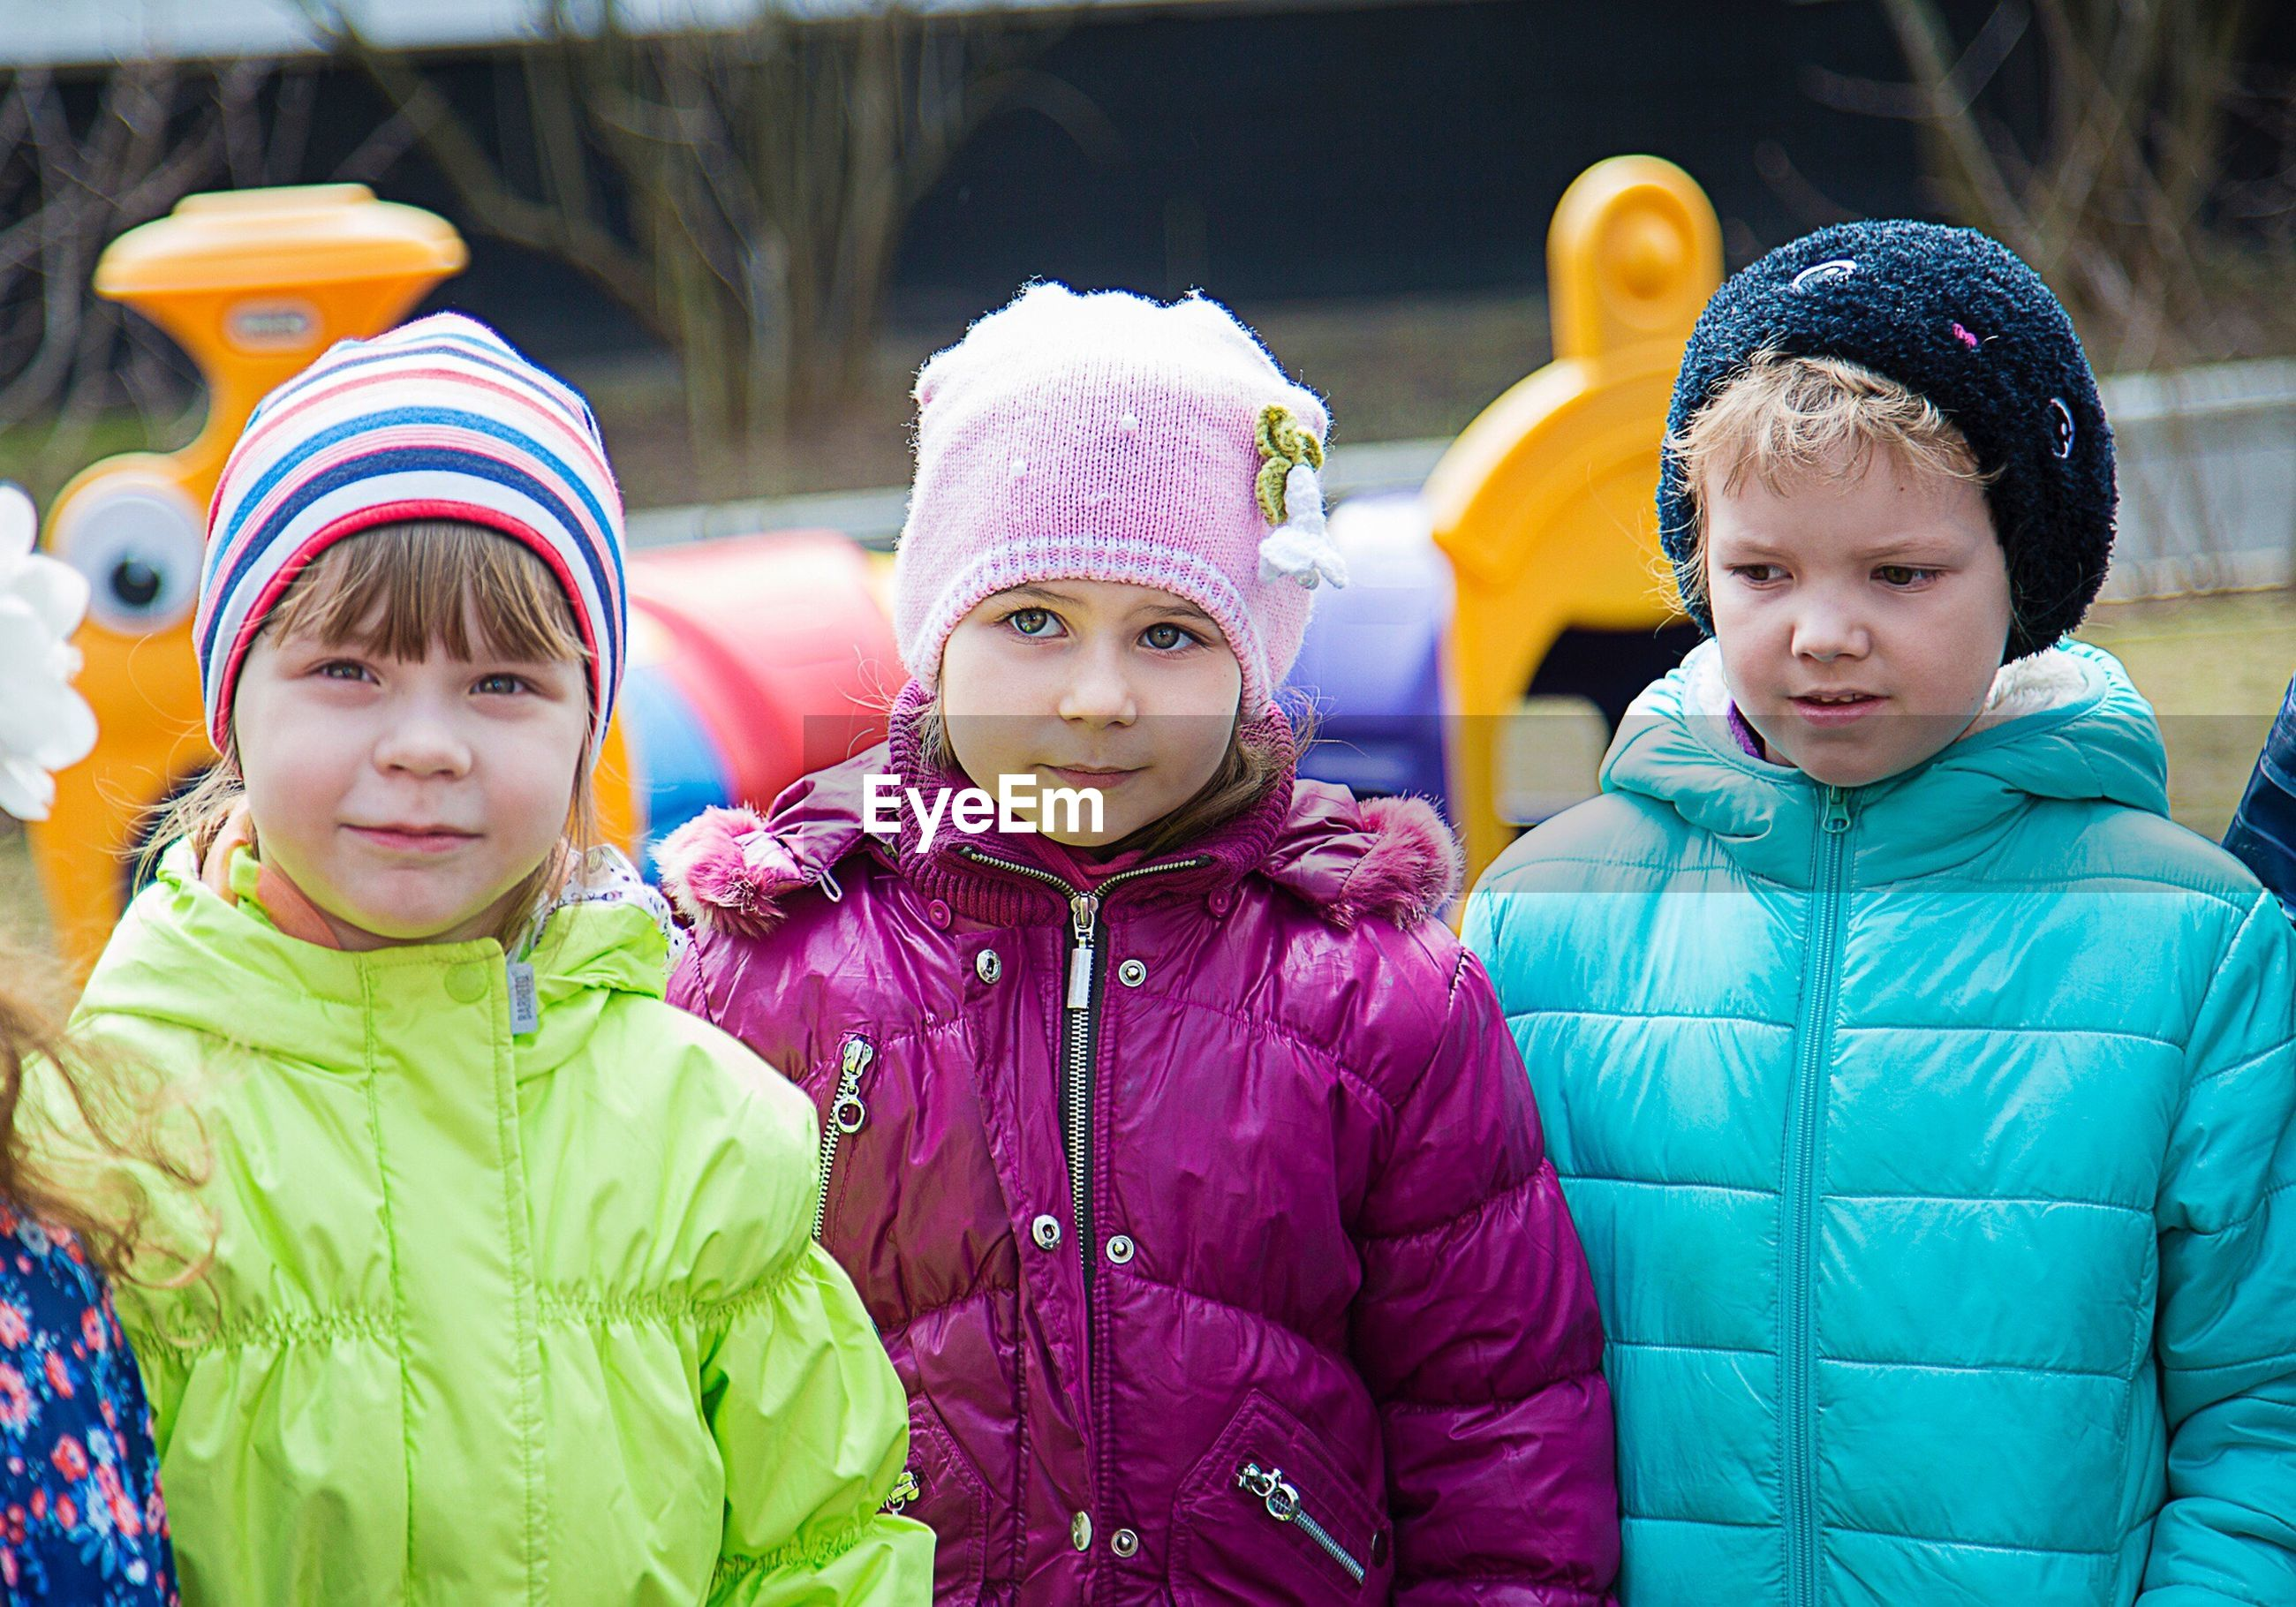 elementary age, childhood, girls, front view, leisure activity, smiling, lifestyles, togetherness, innocence, sibling, mask - disguise, fun, multi colored, focus on foreground, colorful